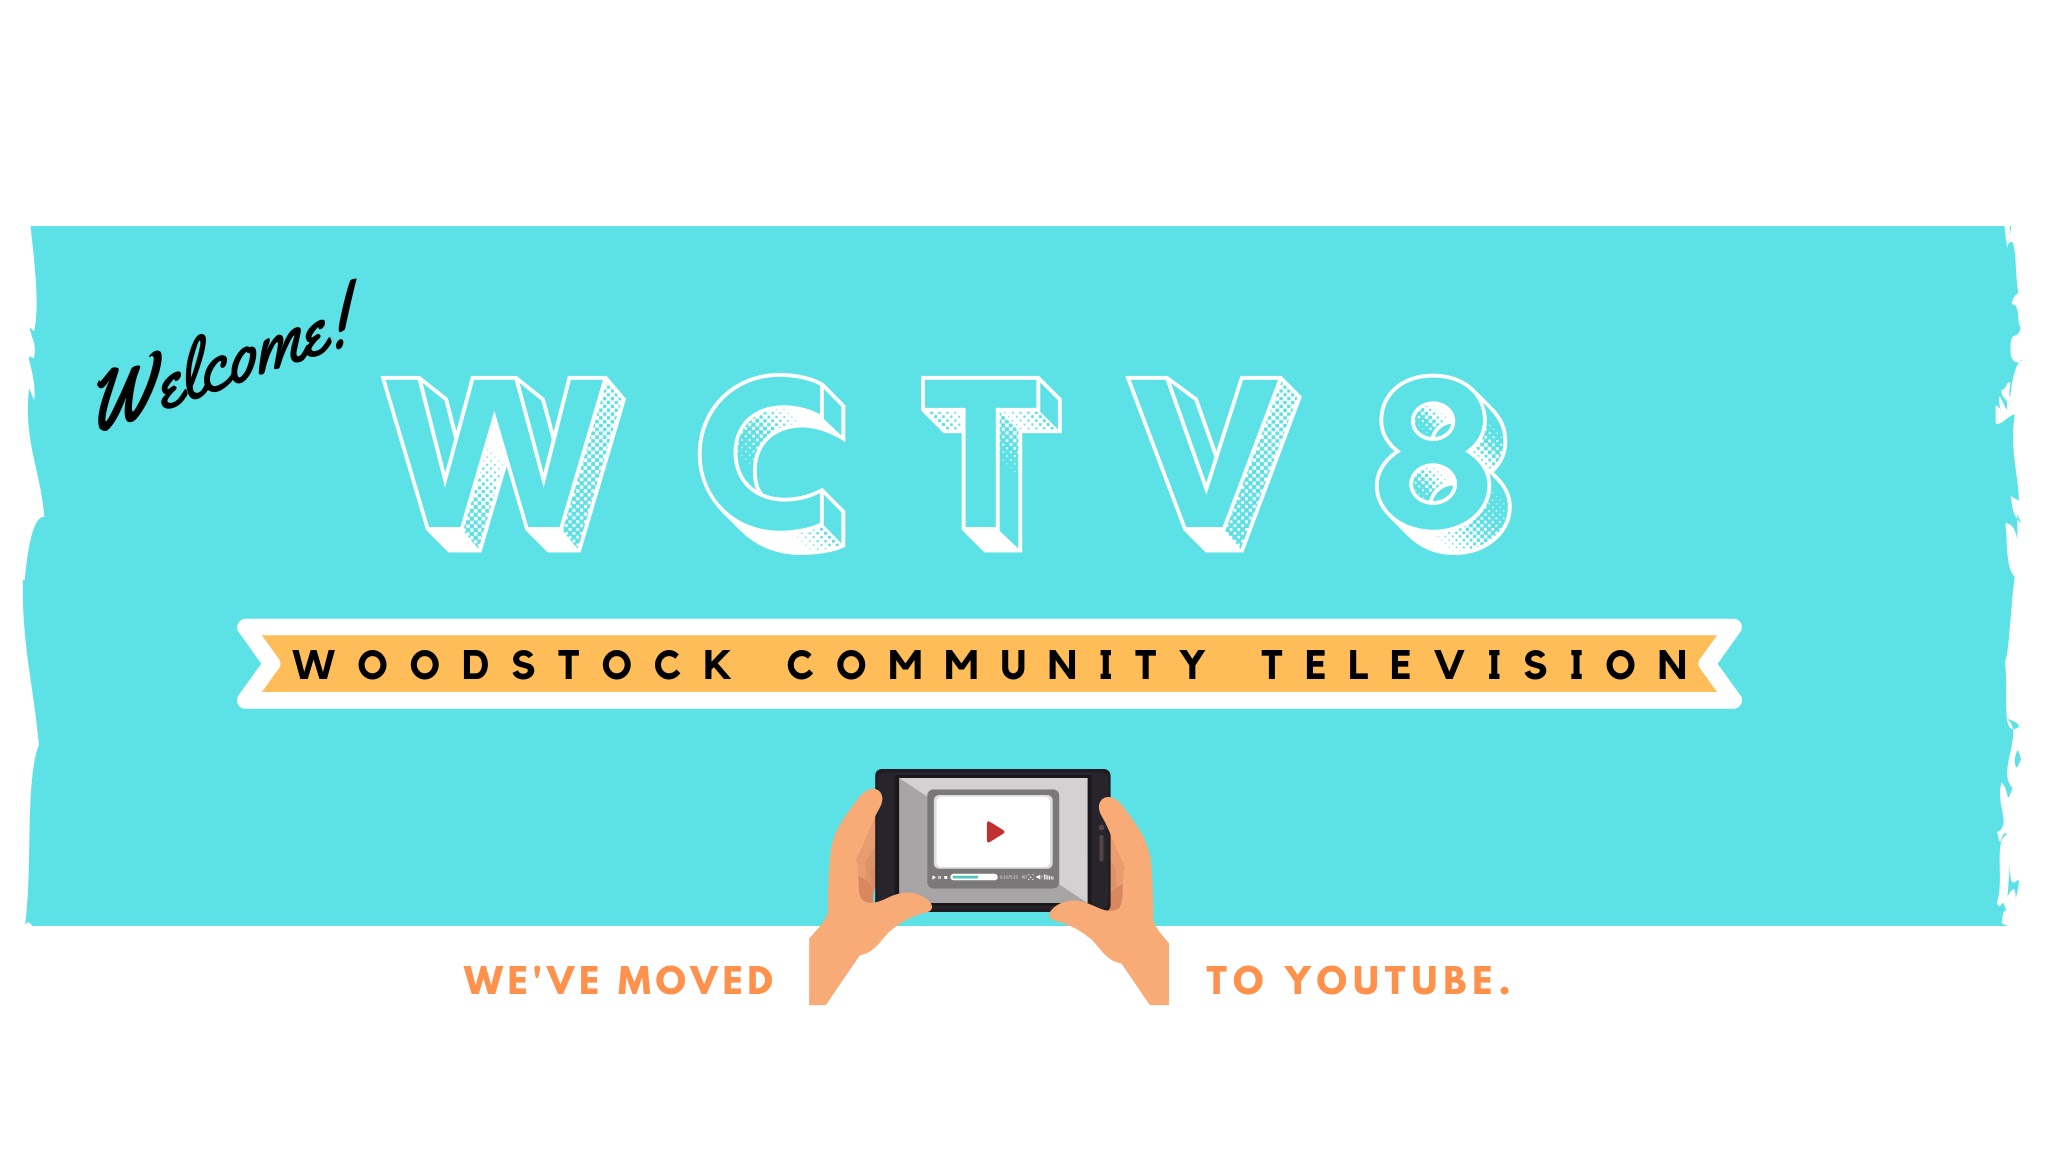 Woodstock Community Television